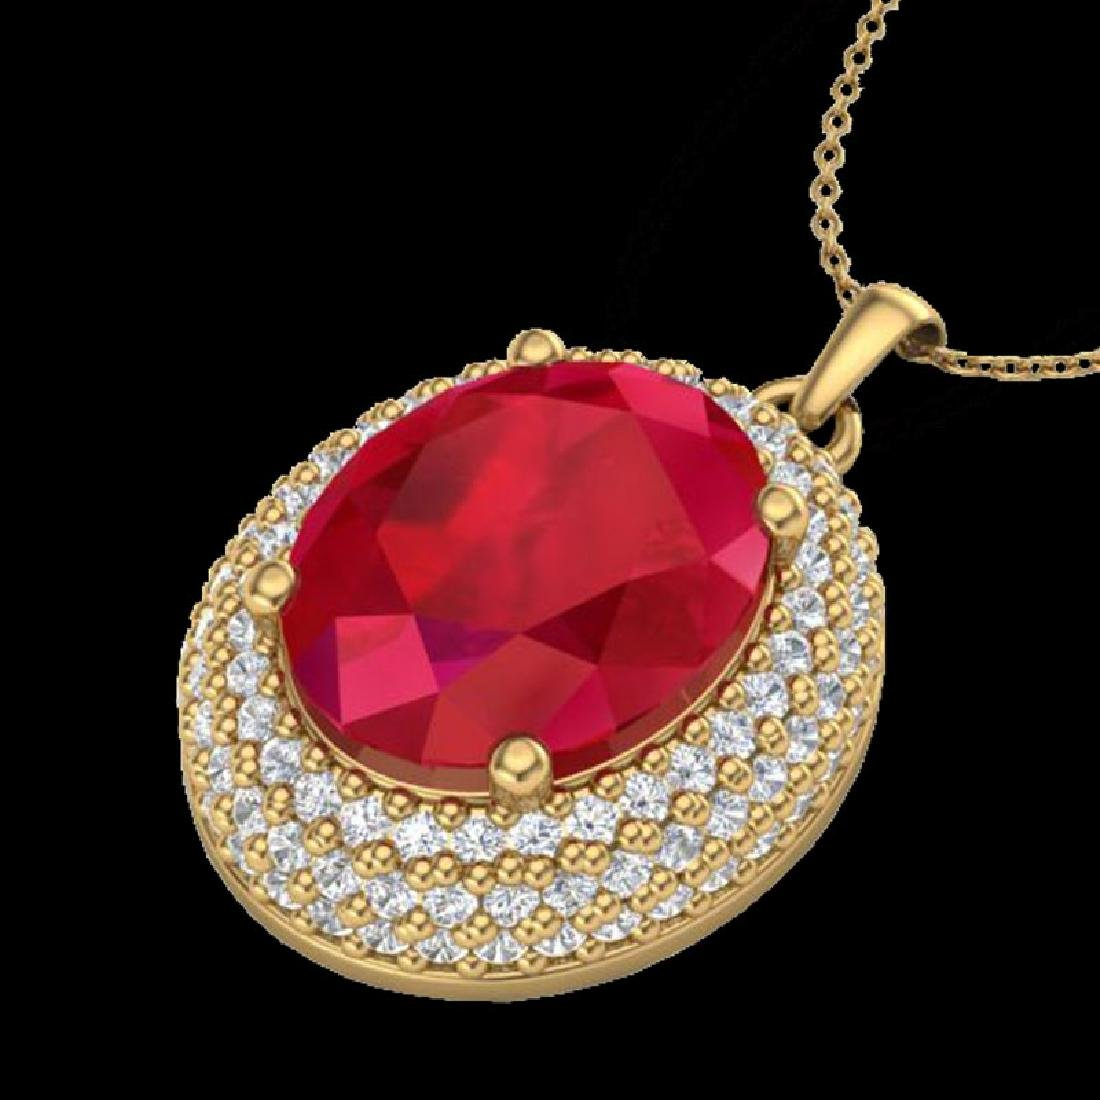 4.50 CTW Ruby & Micro Pave VS/SI Diamond Necklace 18K - 2